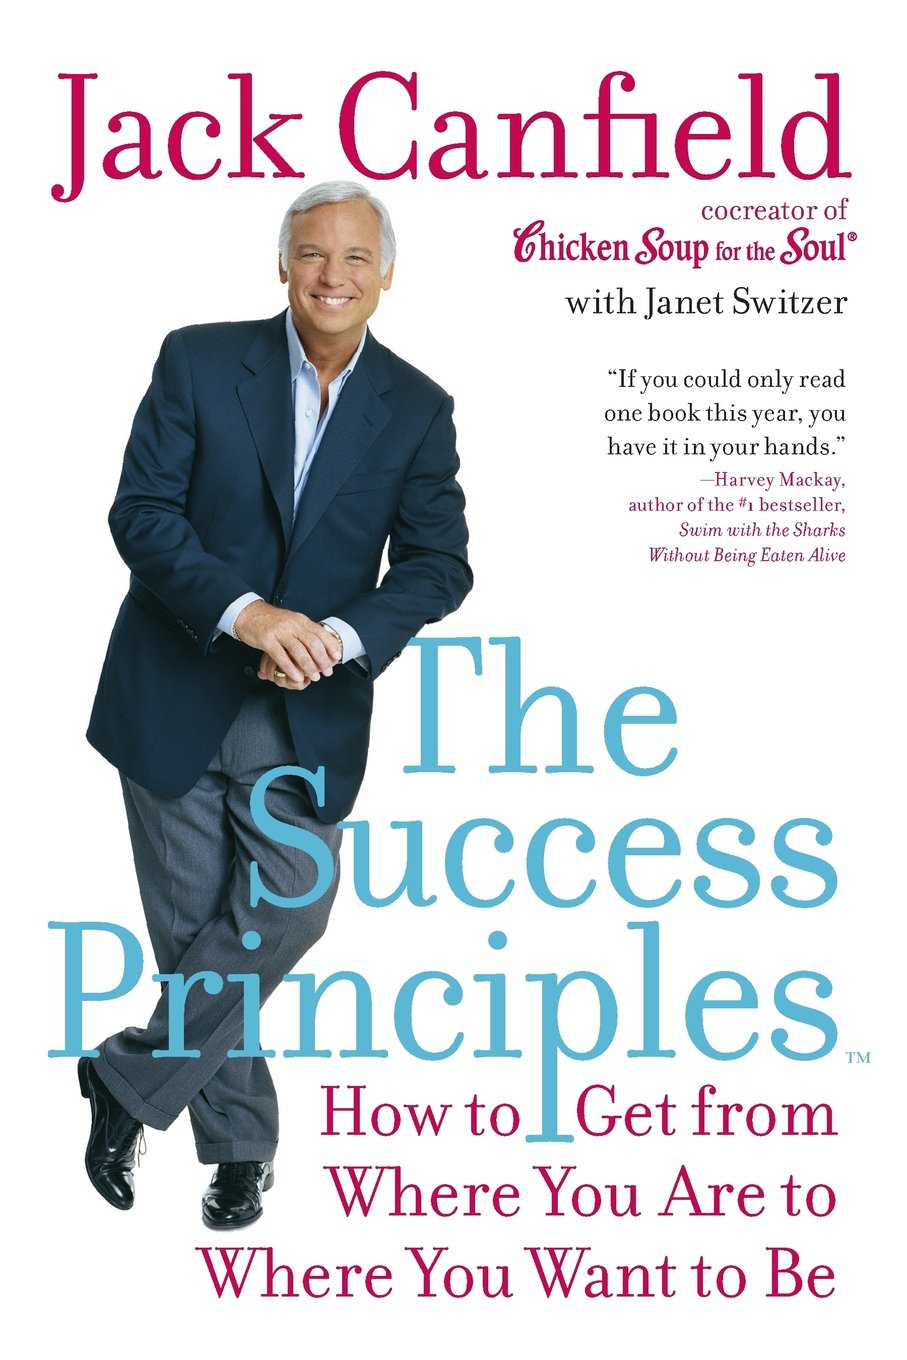 The_Success_Principles-_How_to_Get_from_Where_You_Are_to_Where_You_Want_to_Be_Book.jpg